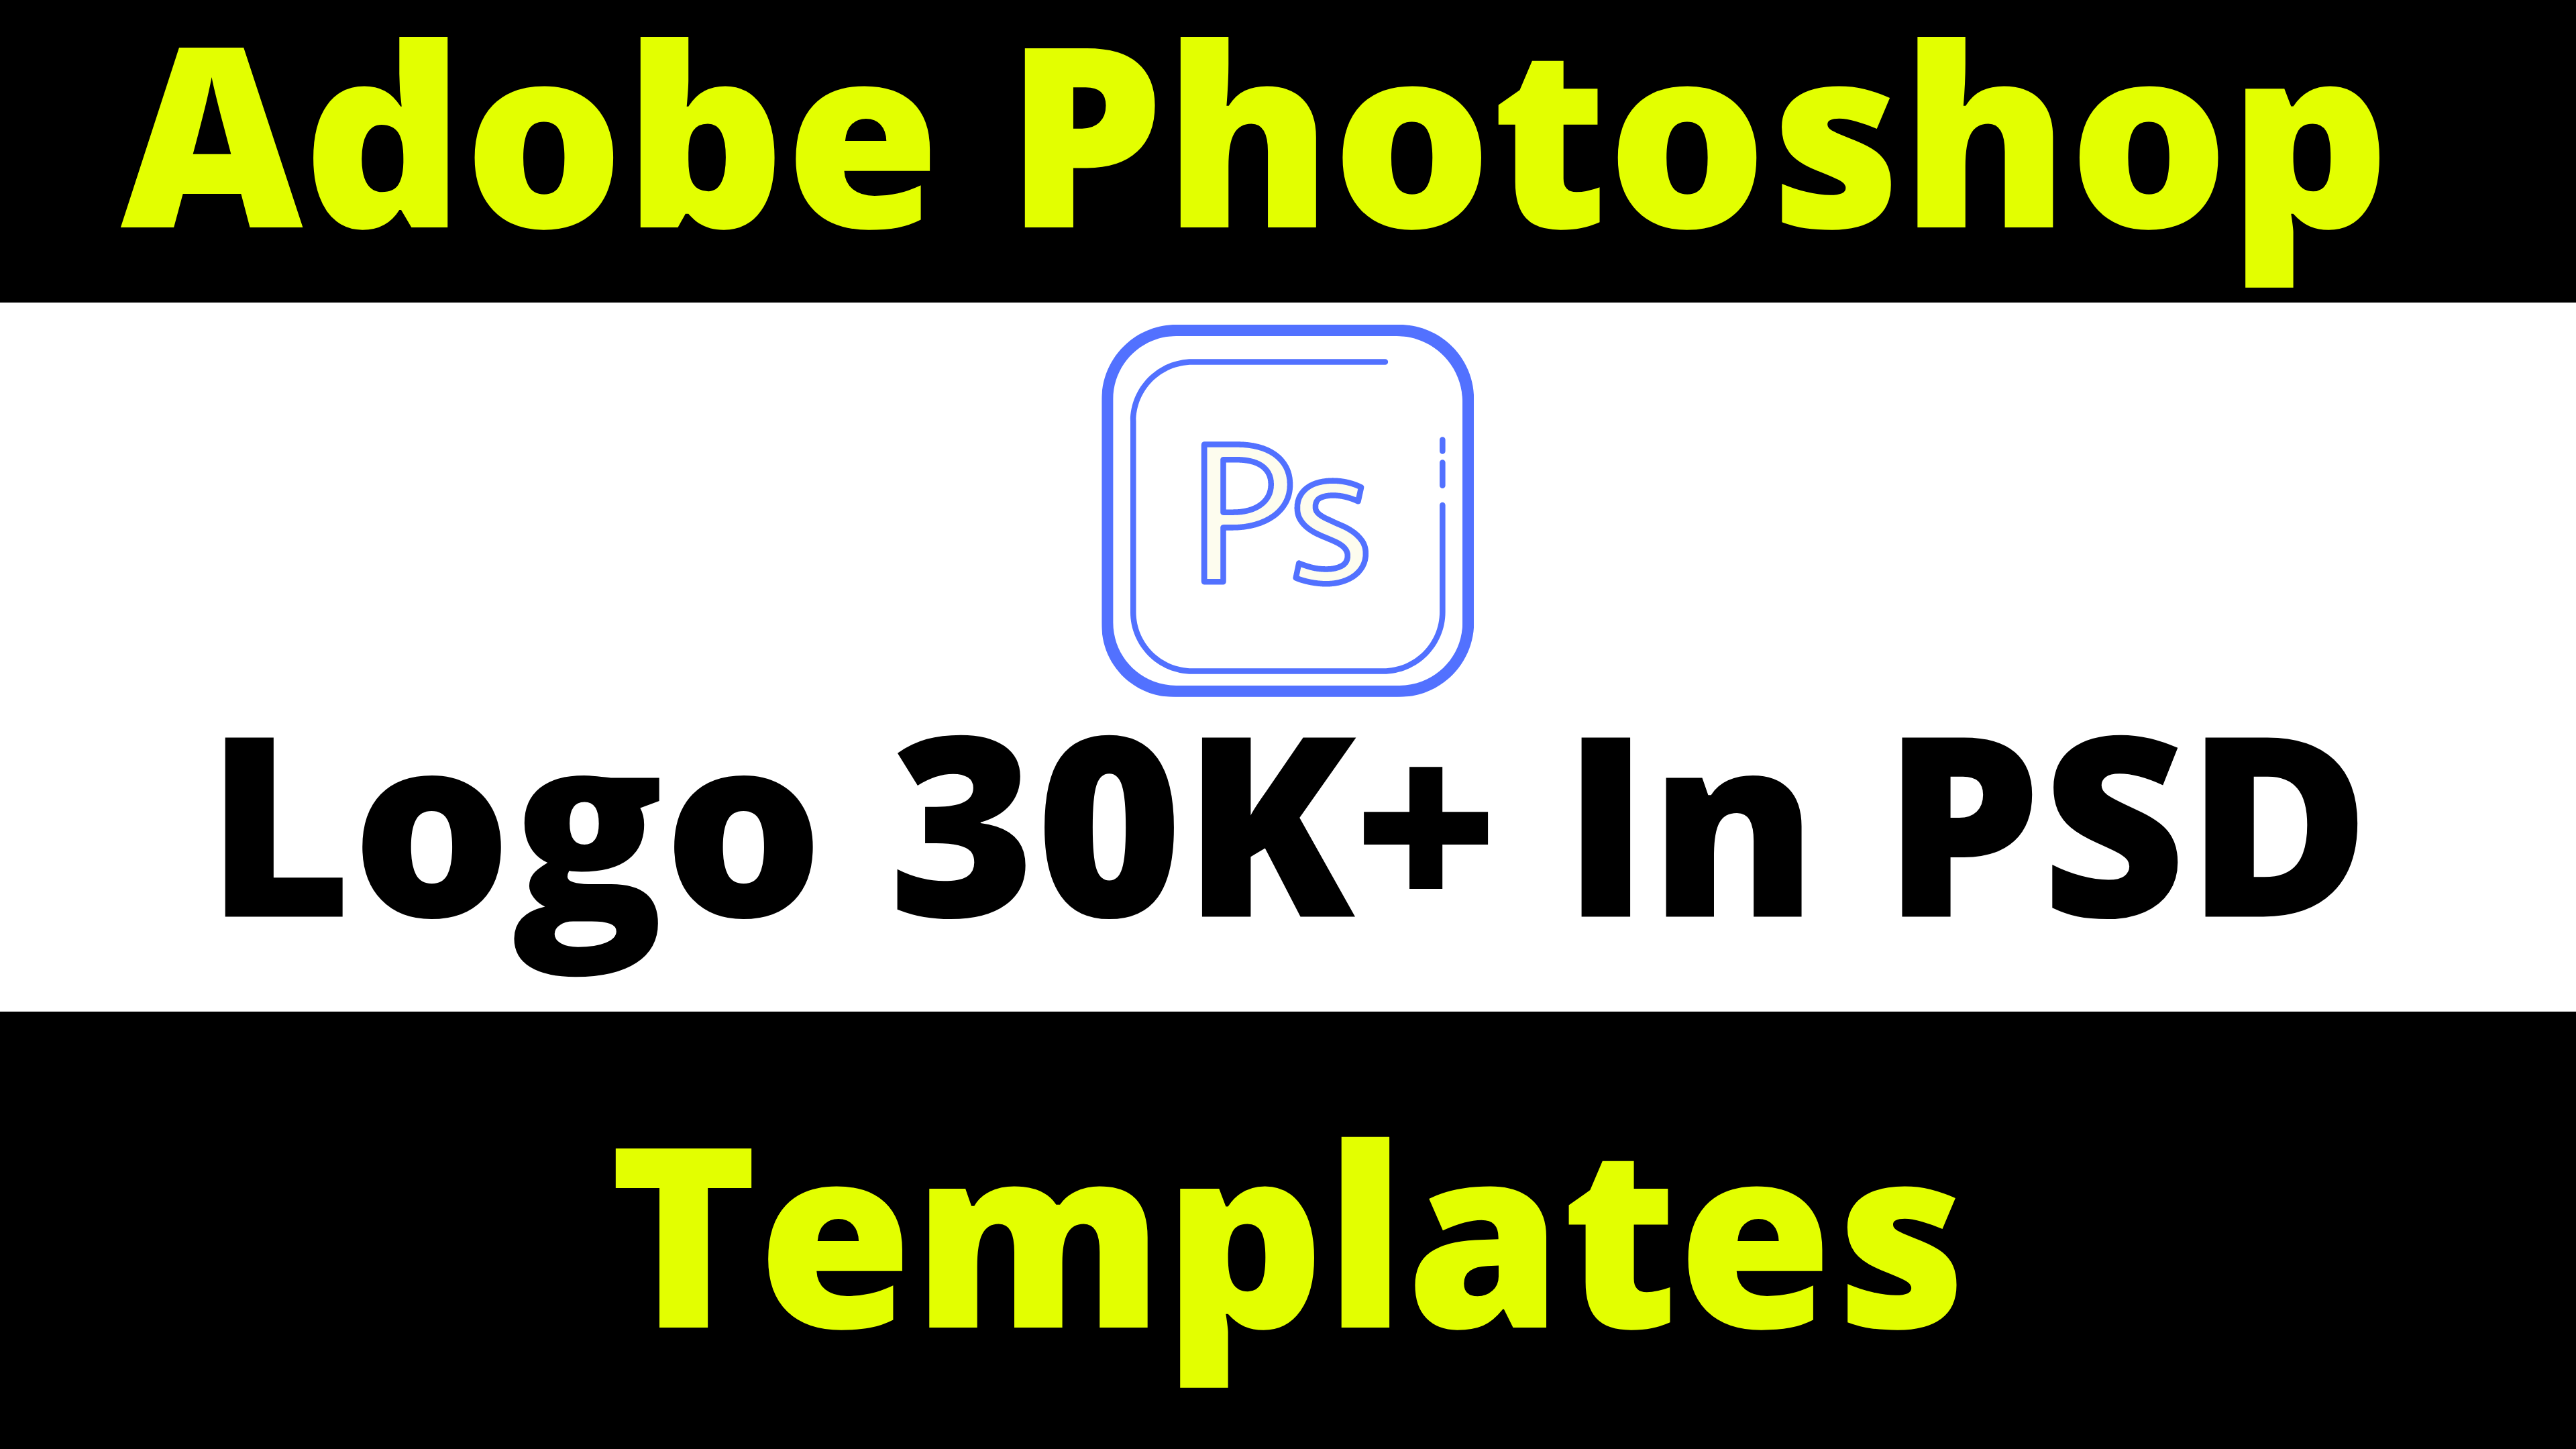 Adobe Logo 30K+ Templates In PSD